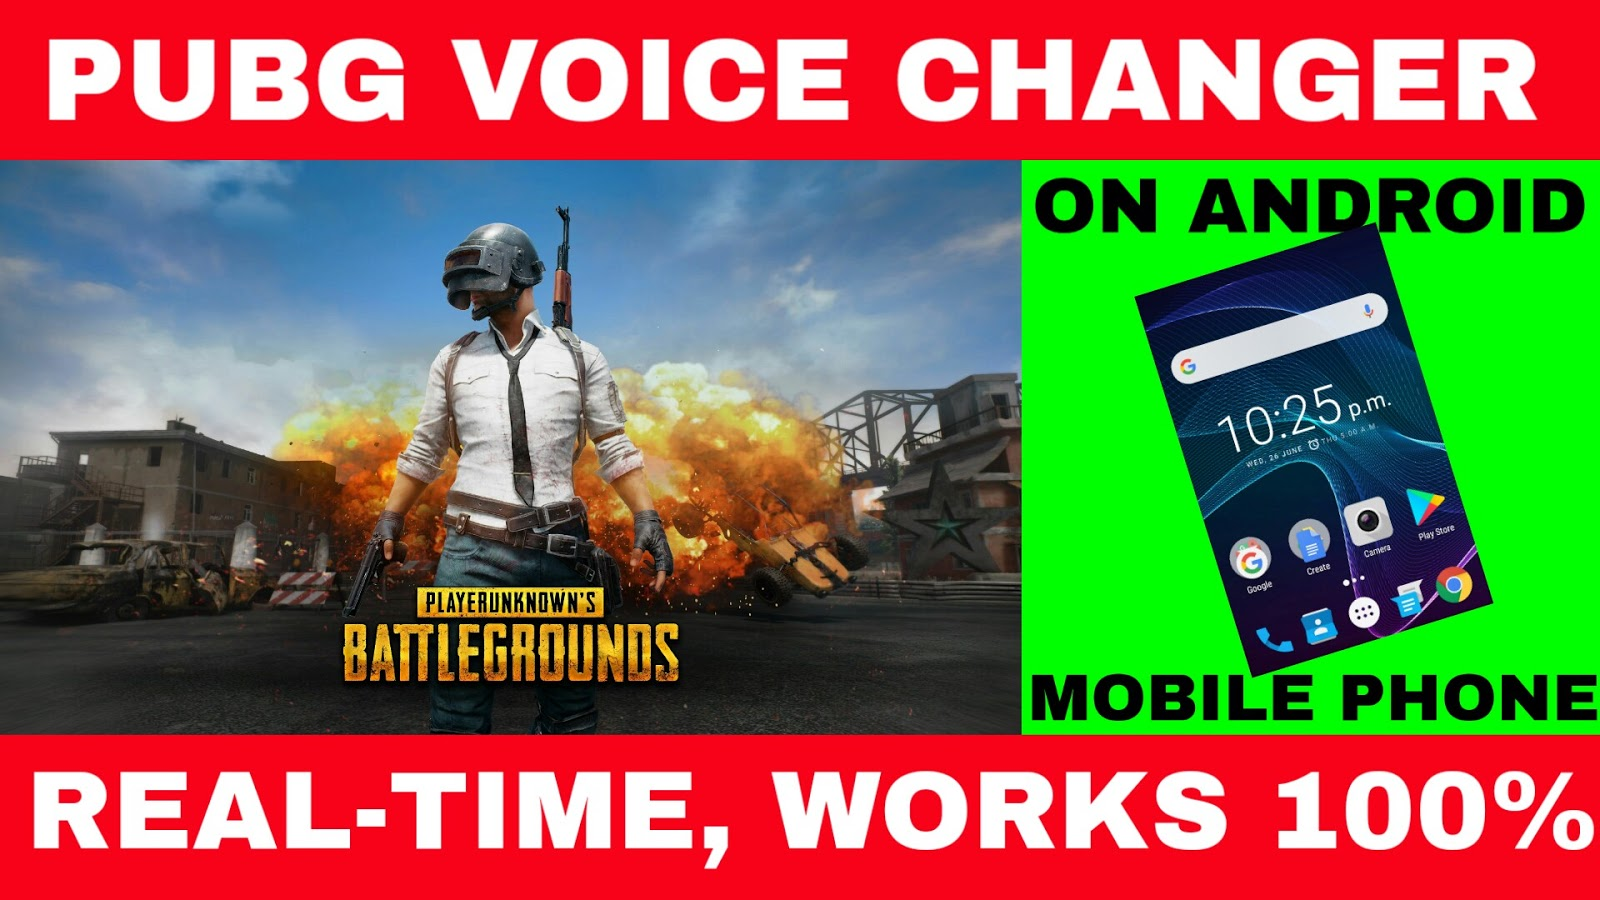 HOW TO CHANGE VOICE IN PUBG MOBILE VOICE CHANGER APP FOR ANDROID